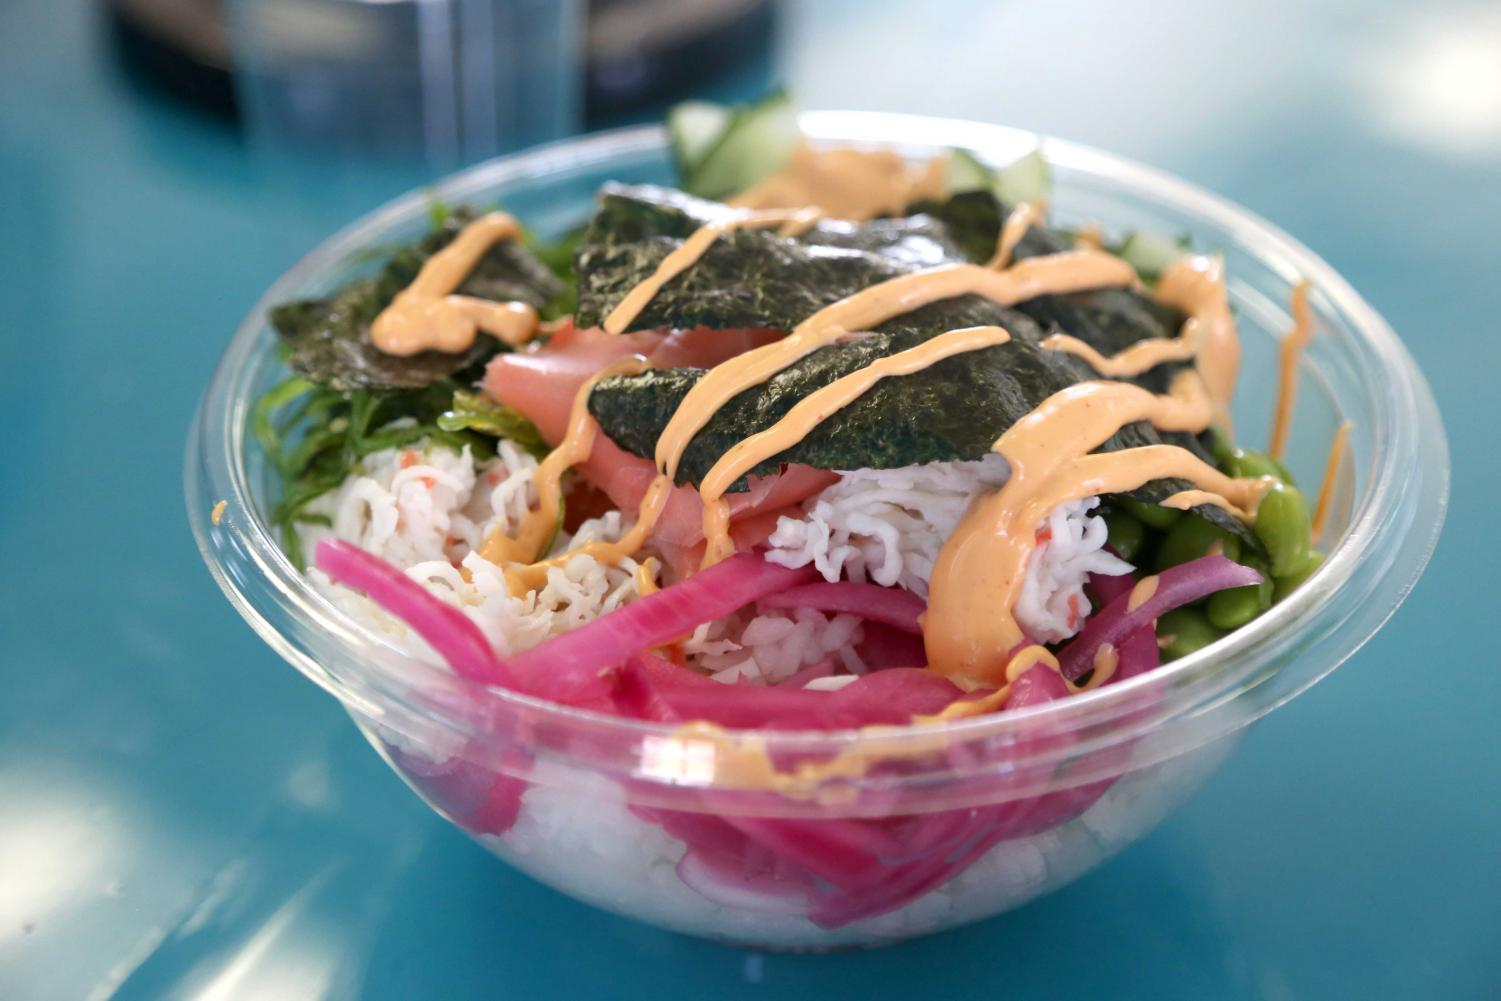 Poke³ offers a variety of raw fish salads that can be customized for your health needs.